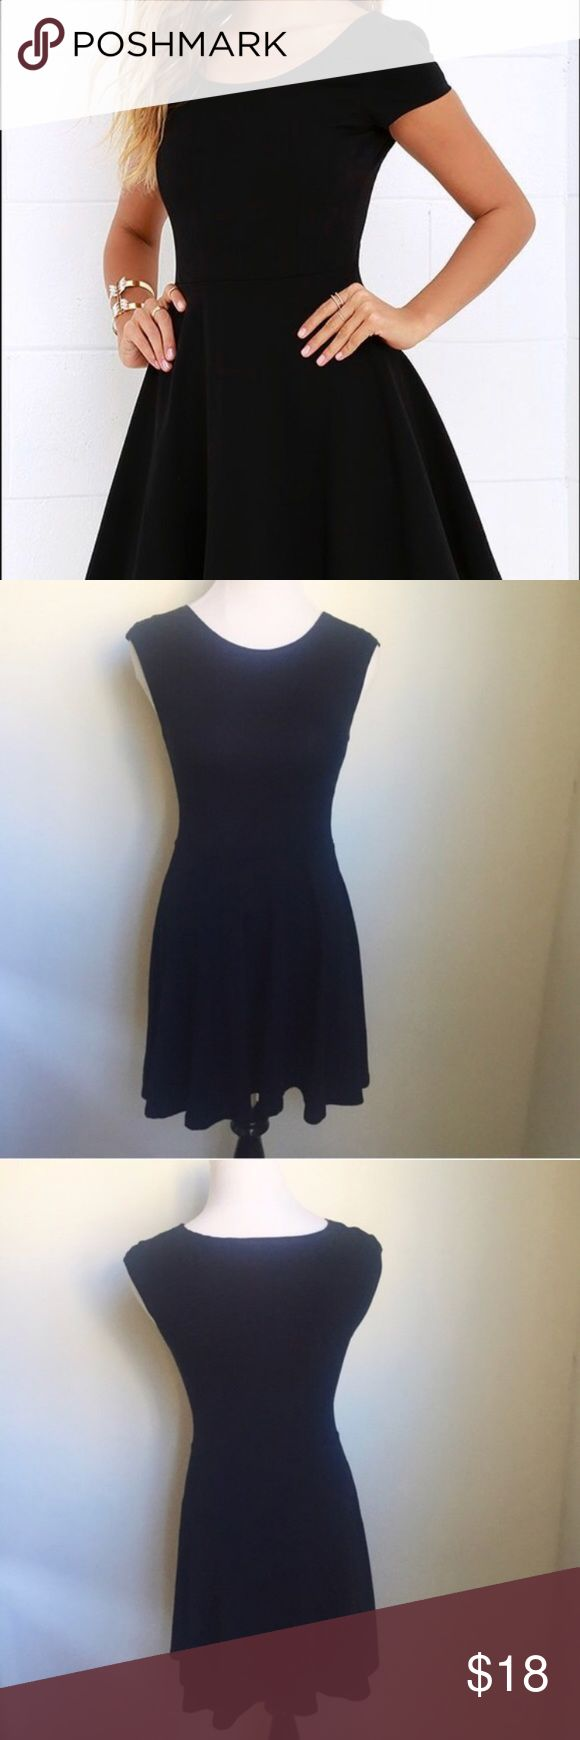 ✨SALE✨ Topshop Petite Stretchy Black Skater Dress ✨SALE✨ Topshop Petite Stretchy Black Skater Dress Topshop Petite Stretchy Black Skater Dress   Measurements laying flat: Underarm to underarm- 12 Total length- 31 Waist -11   👍🏻👍🏻 Bundle and SAVE! 👍🏻👍🏻 🛍 10% off 2 or more items 🛍 🙅🏻🙅🏻 NO TRADES 🙅🏻🙅🏻 🚫🚫NO MODELING🚫🚫 Bin 6 Topshop Dresses Mini